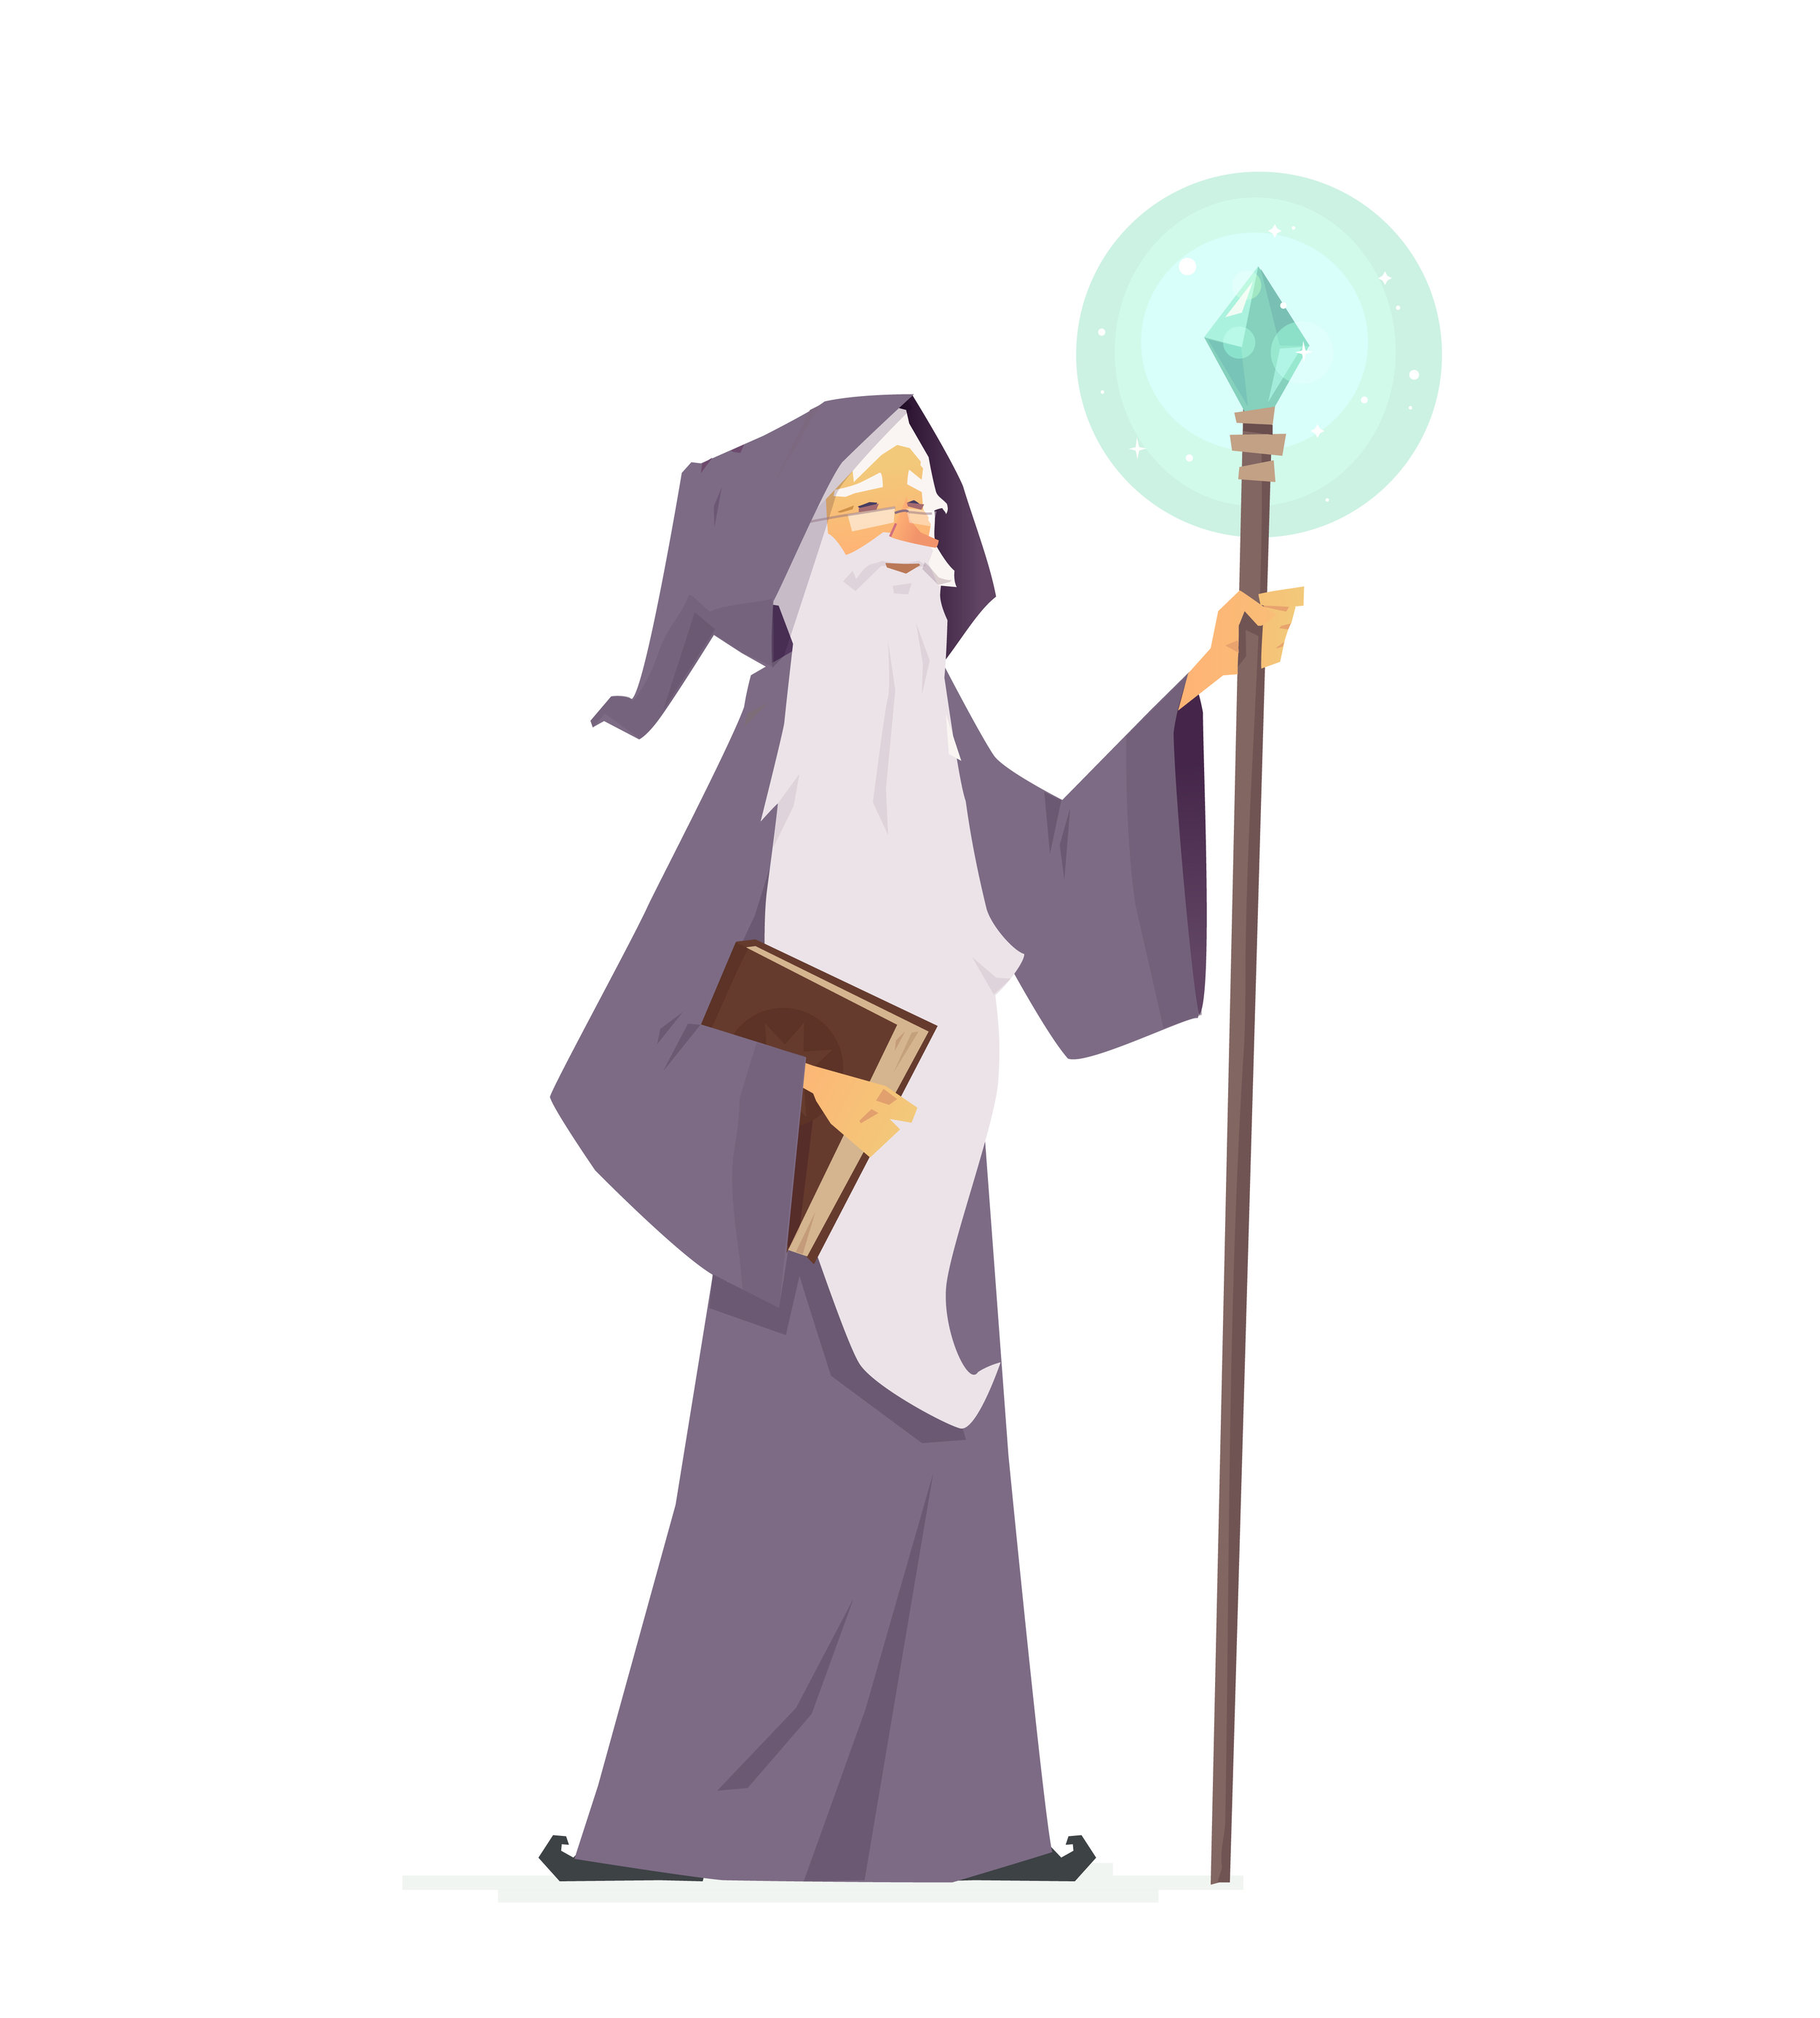 The page you're looking for has gone missing.The staff wizard is now on the case.Thank you for bringing this to our attention. -